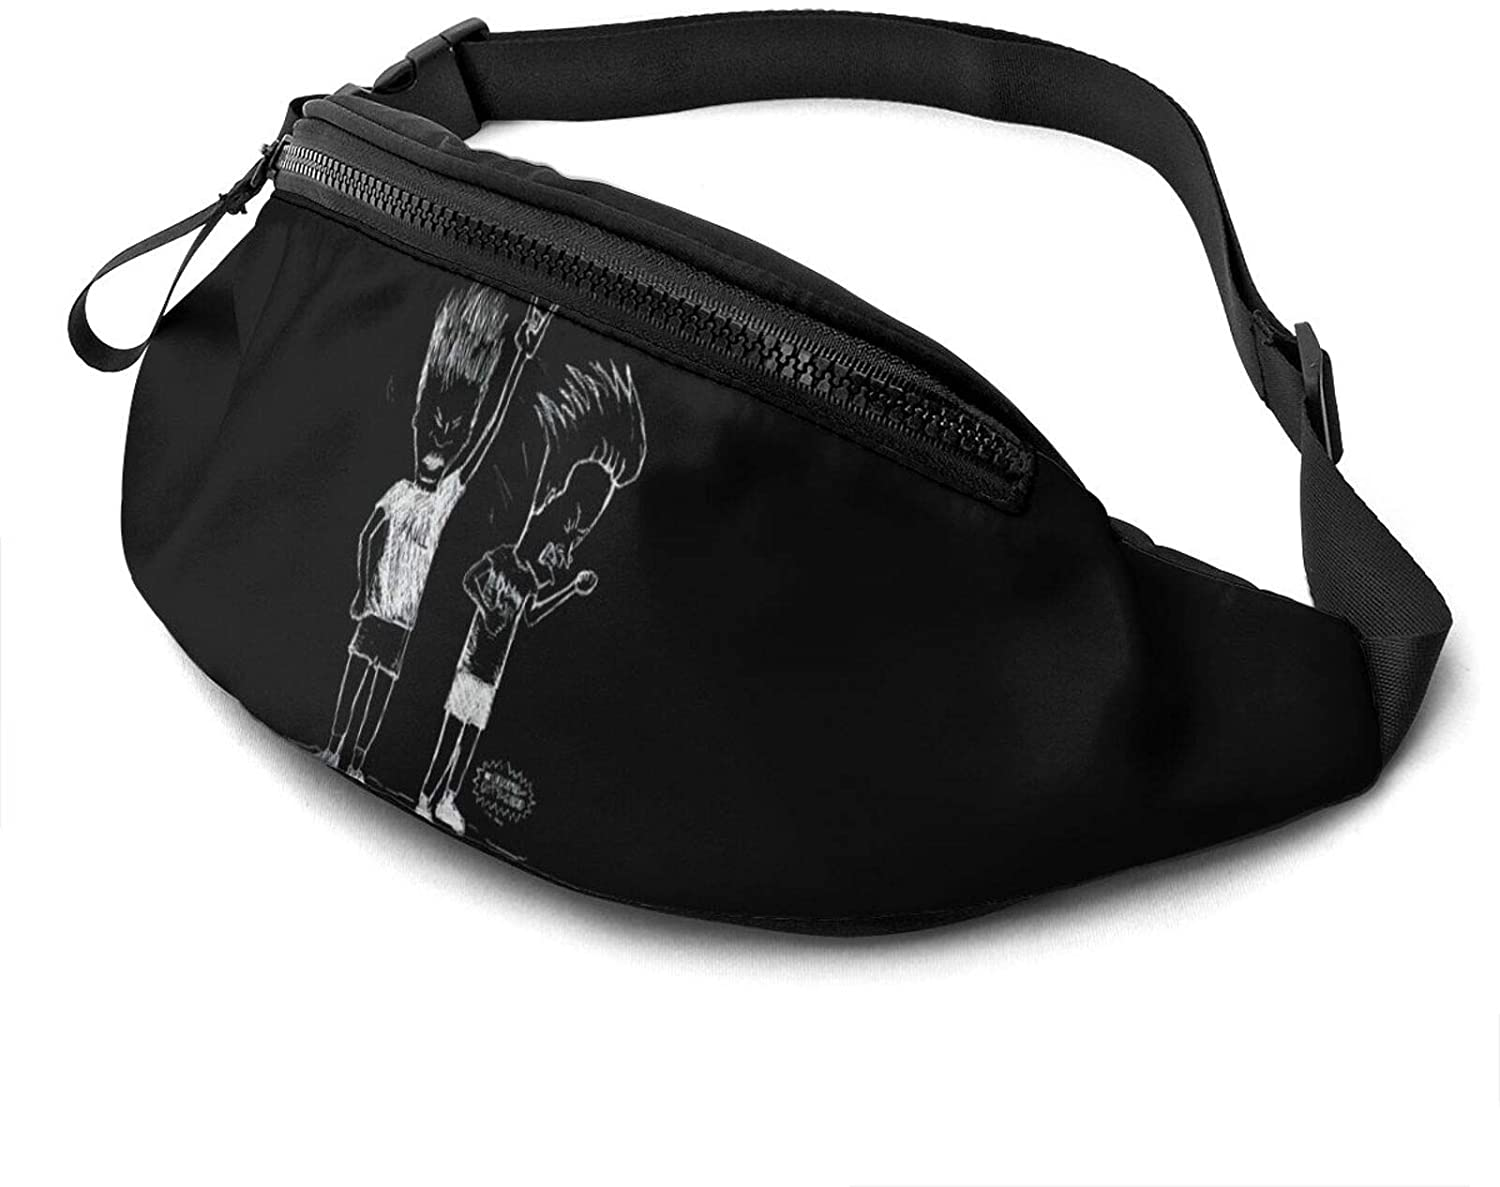 Atsh Beavis and Butt-Head Waist Pack Bag Fanny Pack for Men Women Hip Bum Bag with Adjustable Strap Fashionable and Convenient